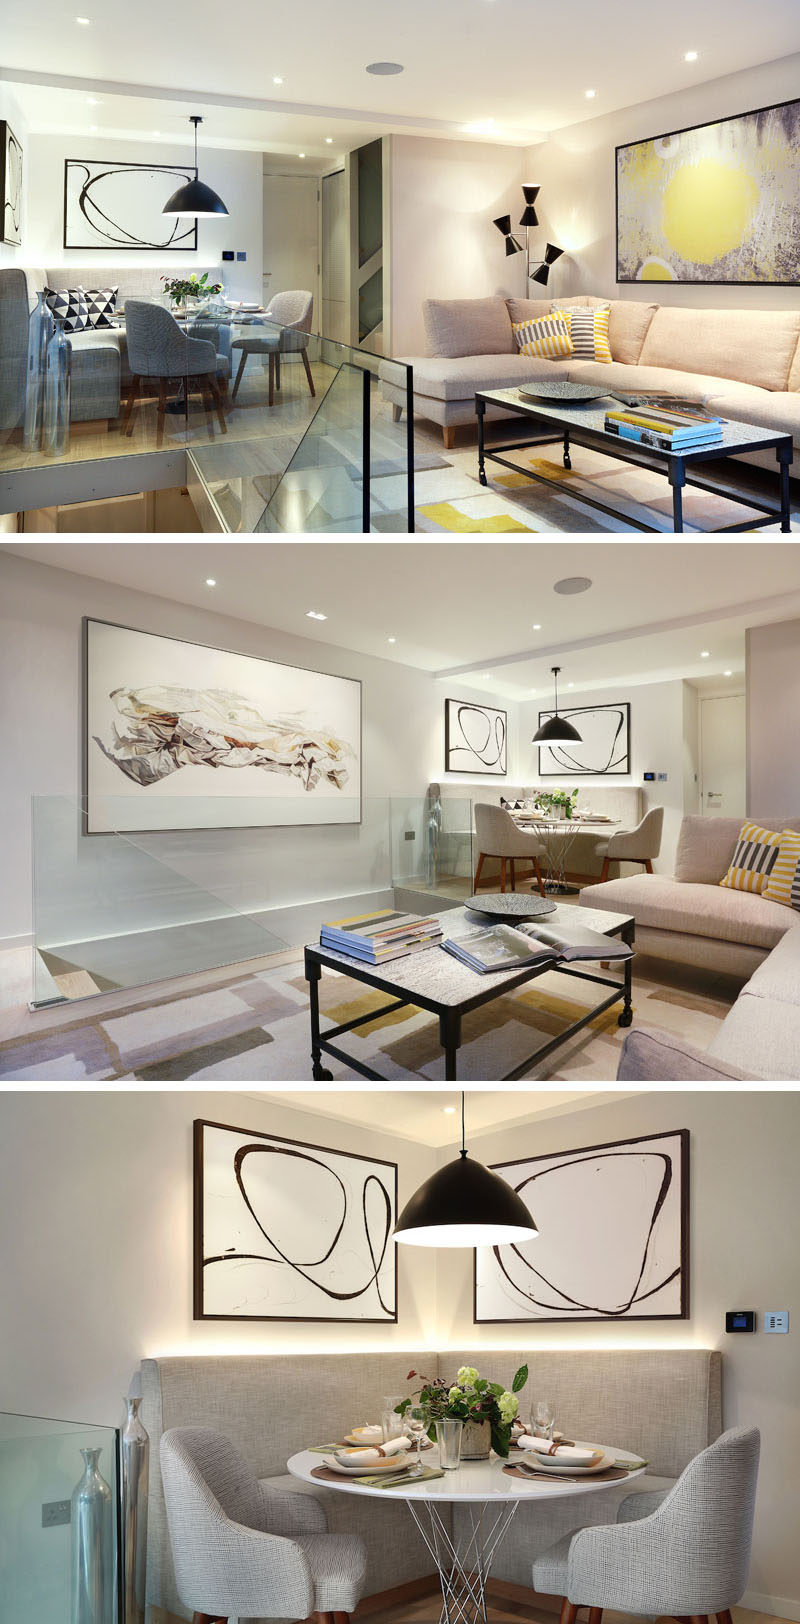 A custom designed banquette was included in this living room design. The banquette is lit from behind with LED strips, and by adding a round table and two dining chairs, the space can comfortably sit 6 people.